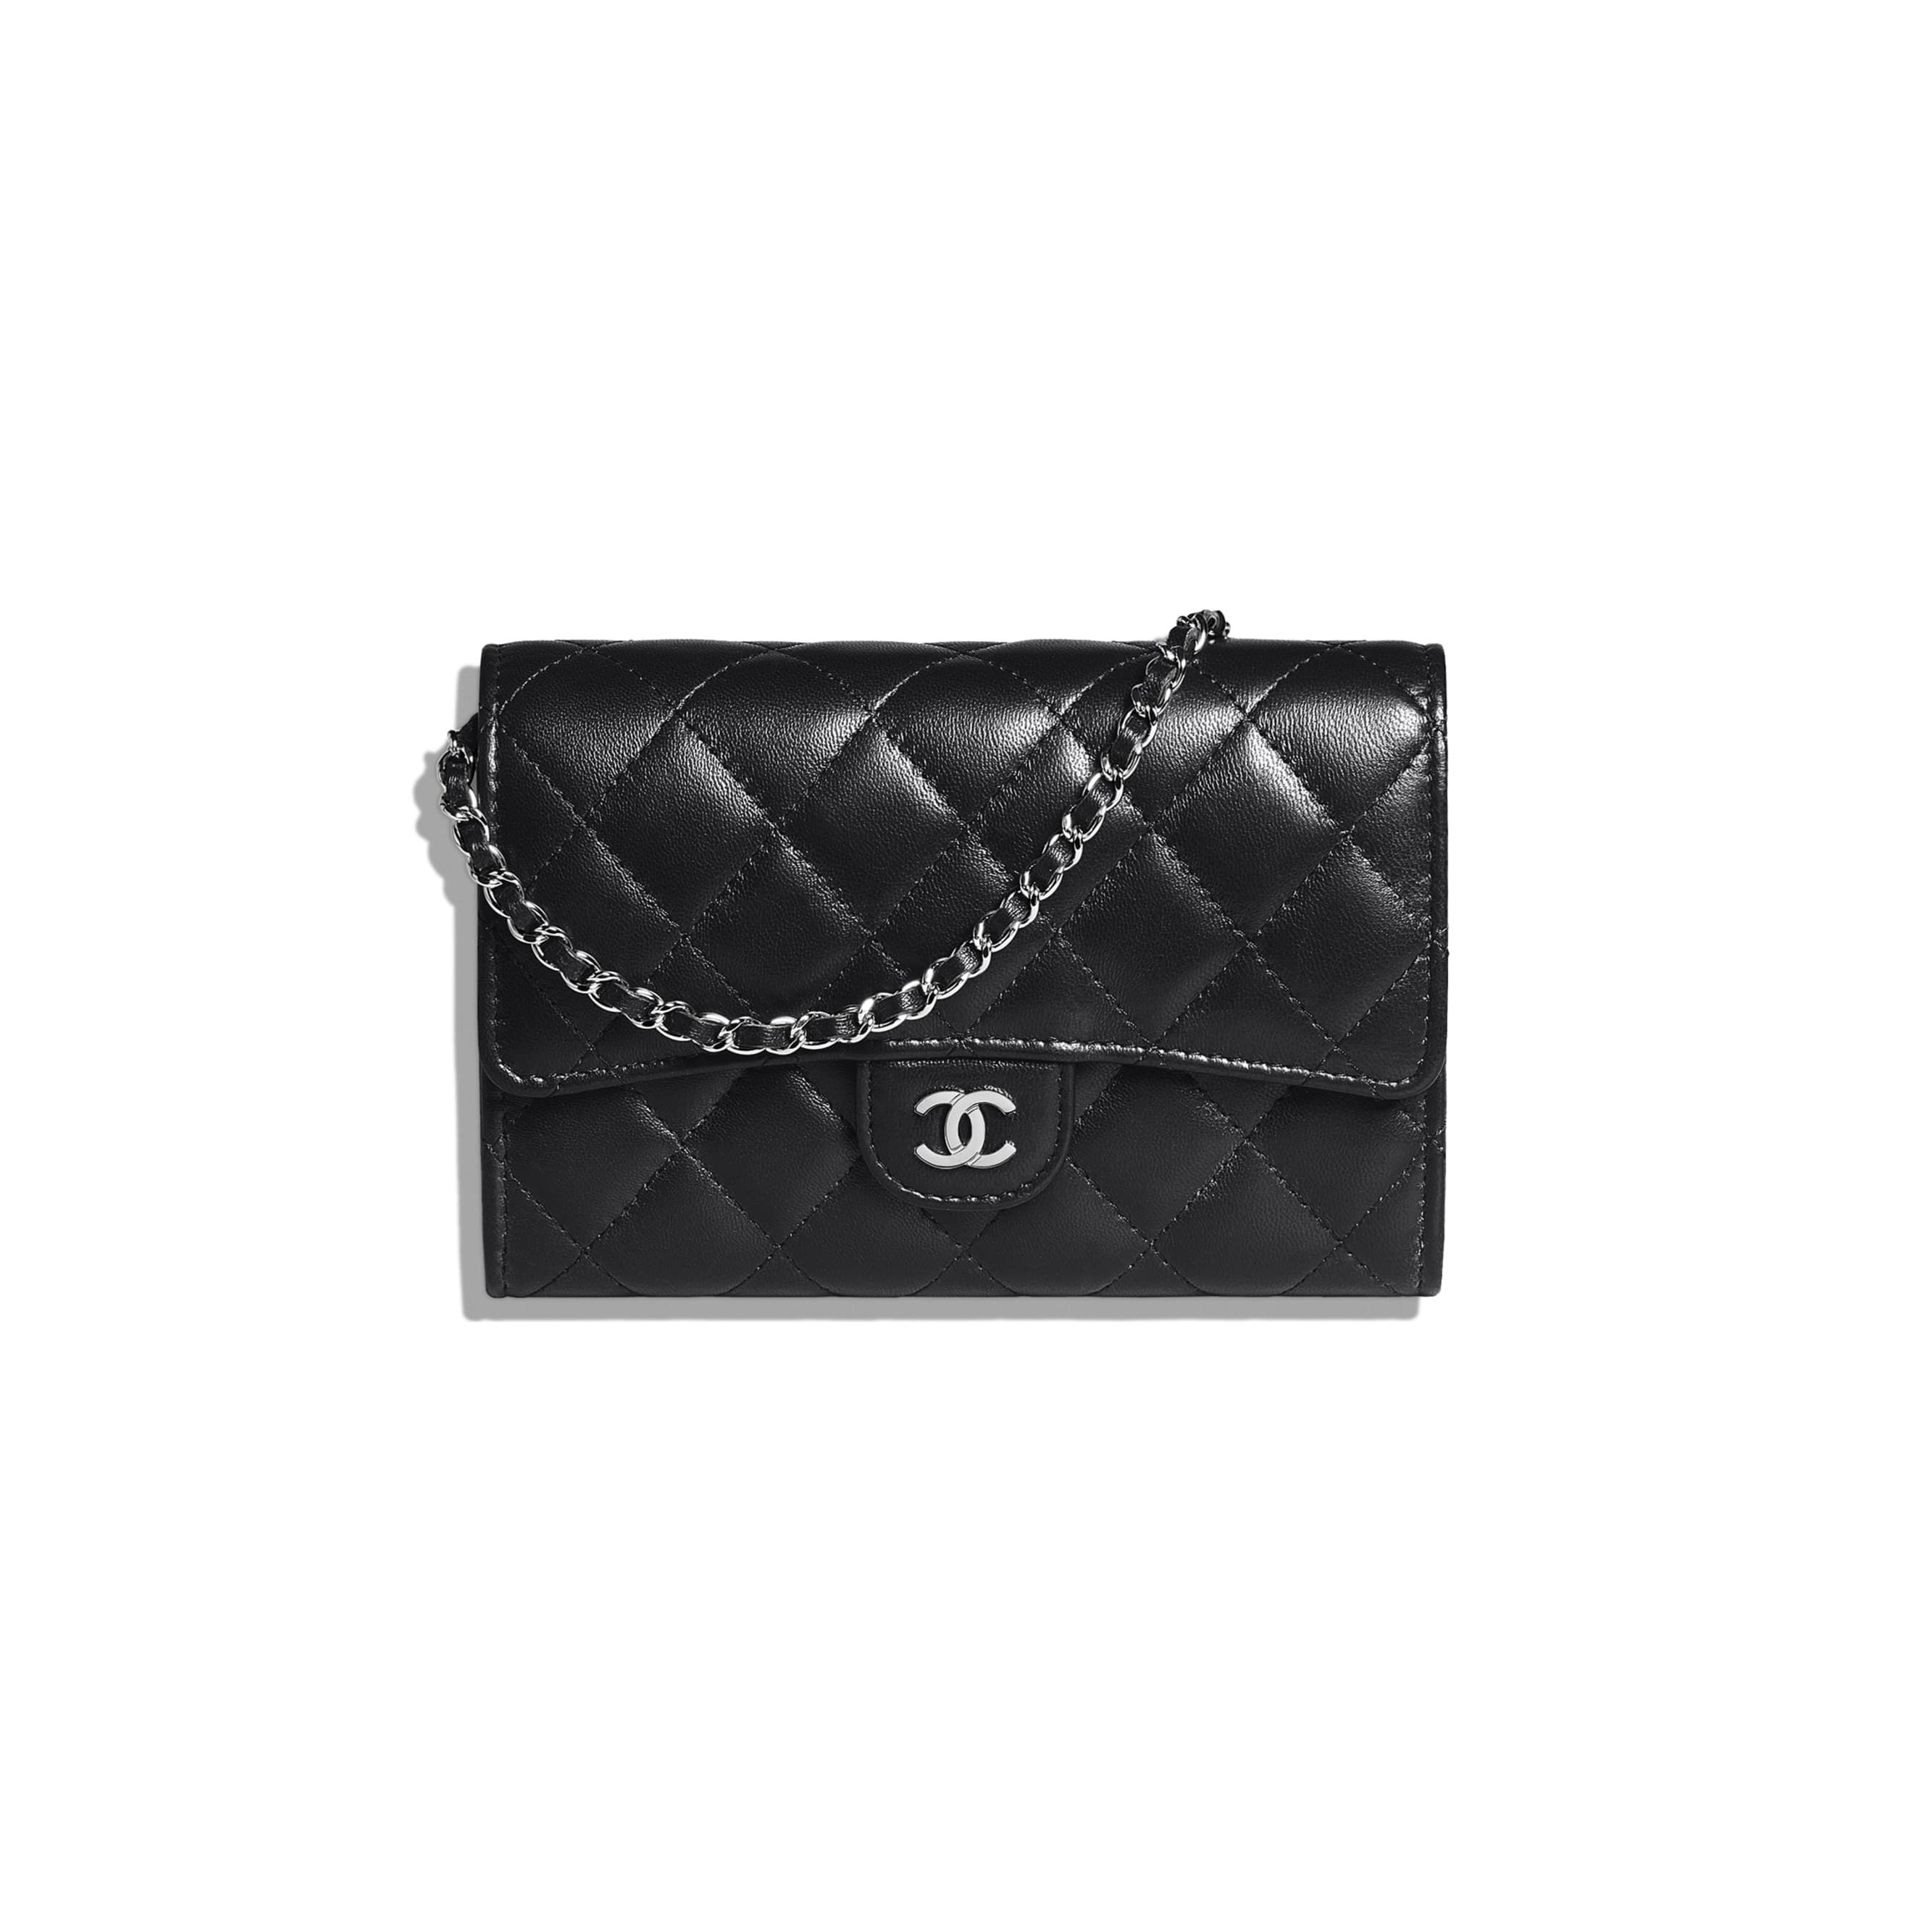 737bfc572242 Lambskin & Silver-Tone Metal Black Classic Clutch with Chain in 2019 ...